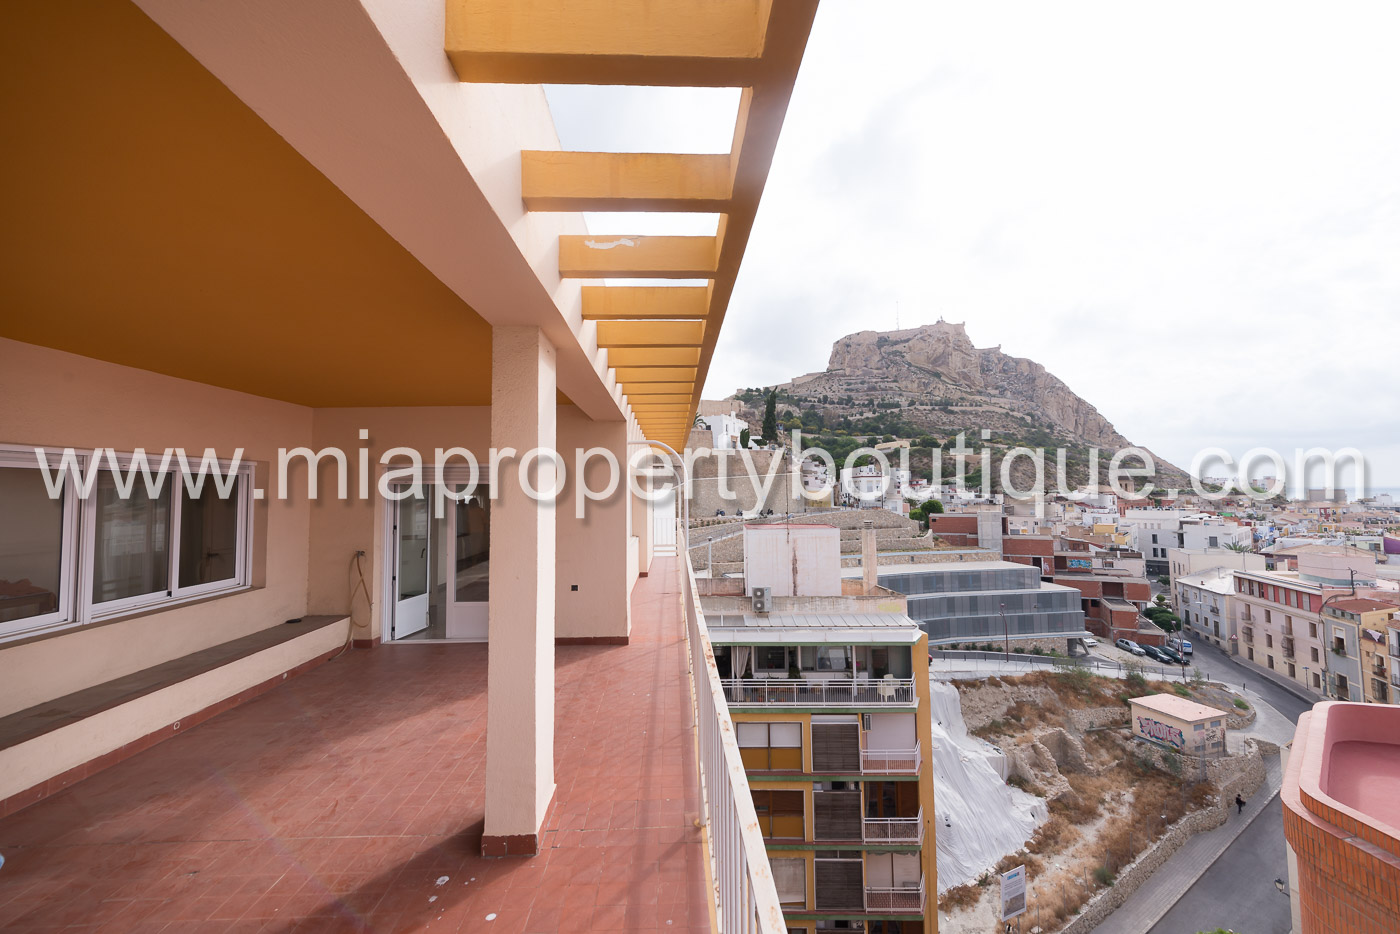 Unbeatable penthouse apartment in Alicante